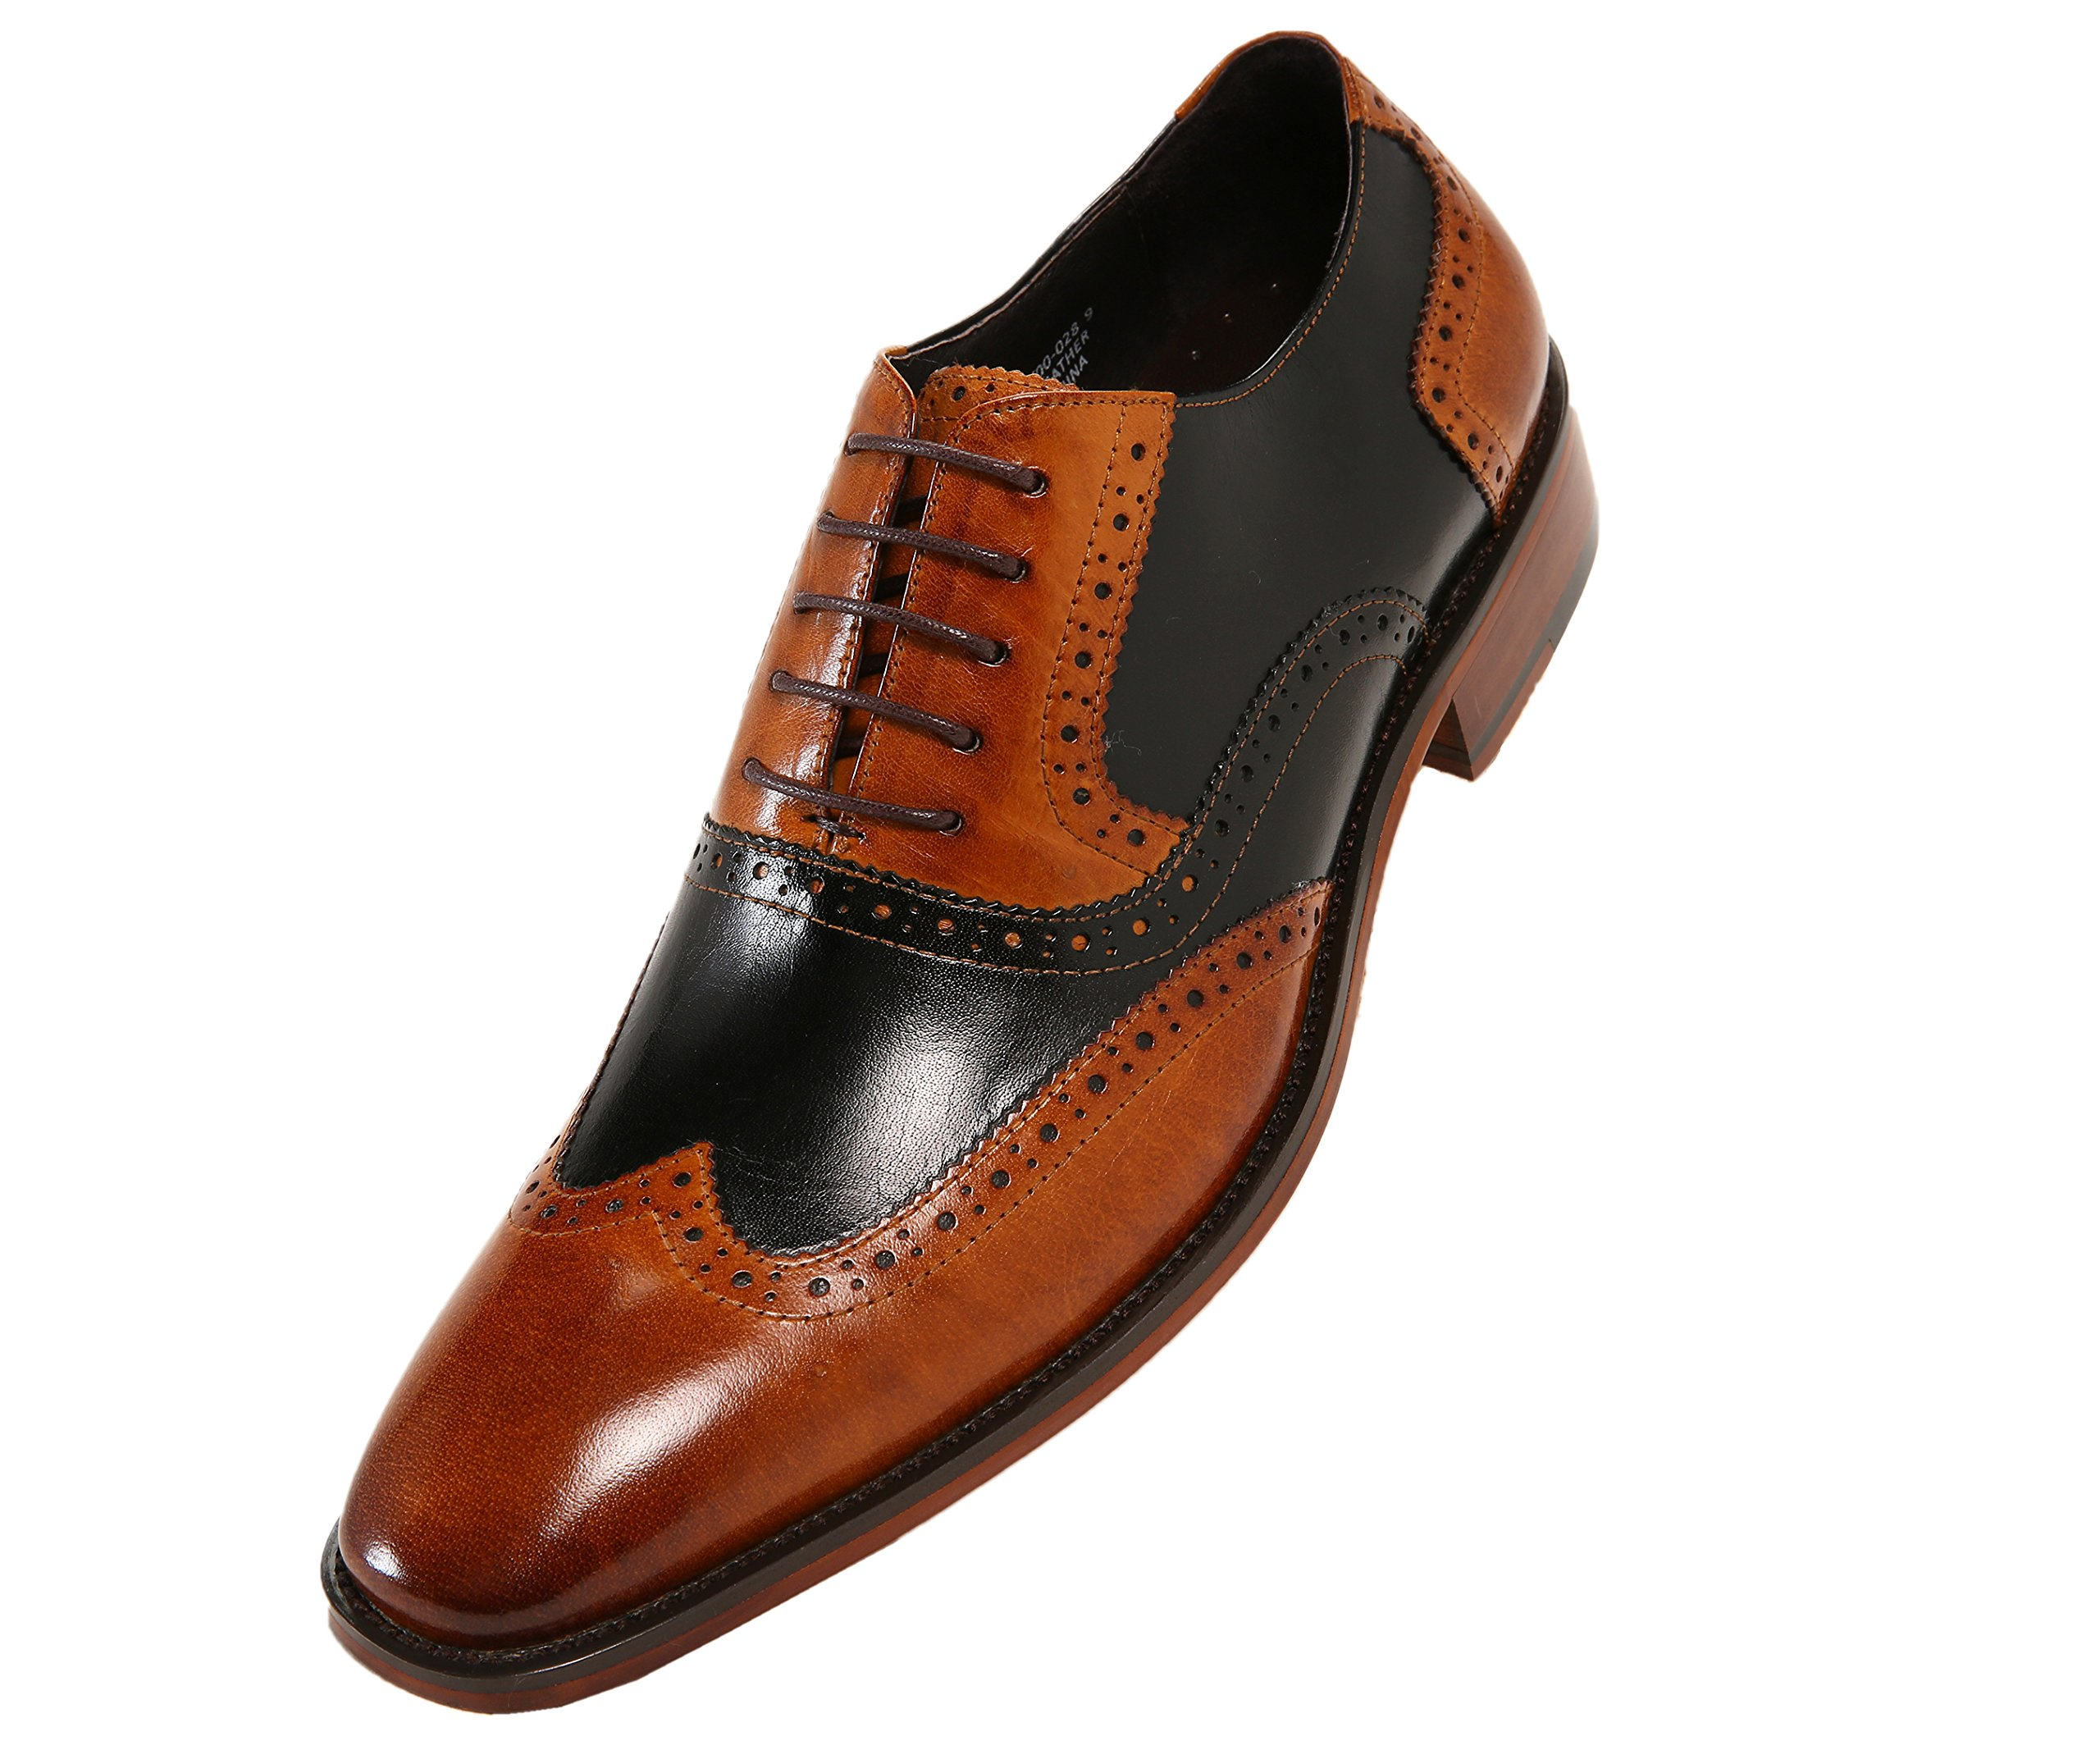 Asher Green Mens Two Tone Genuine Calf Leather Wingtip Spectator Oxford Dress Shoe, Low-Top or High-Top